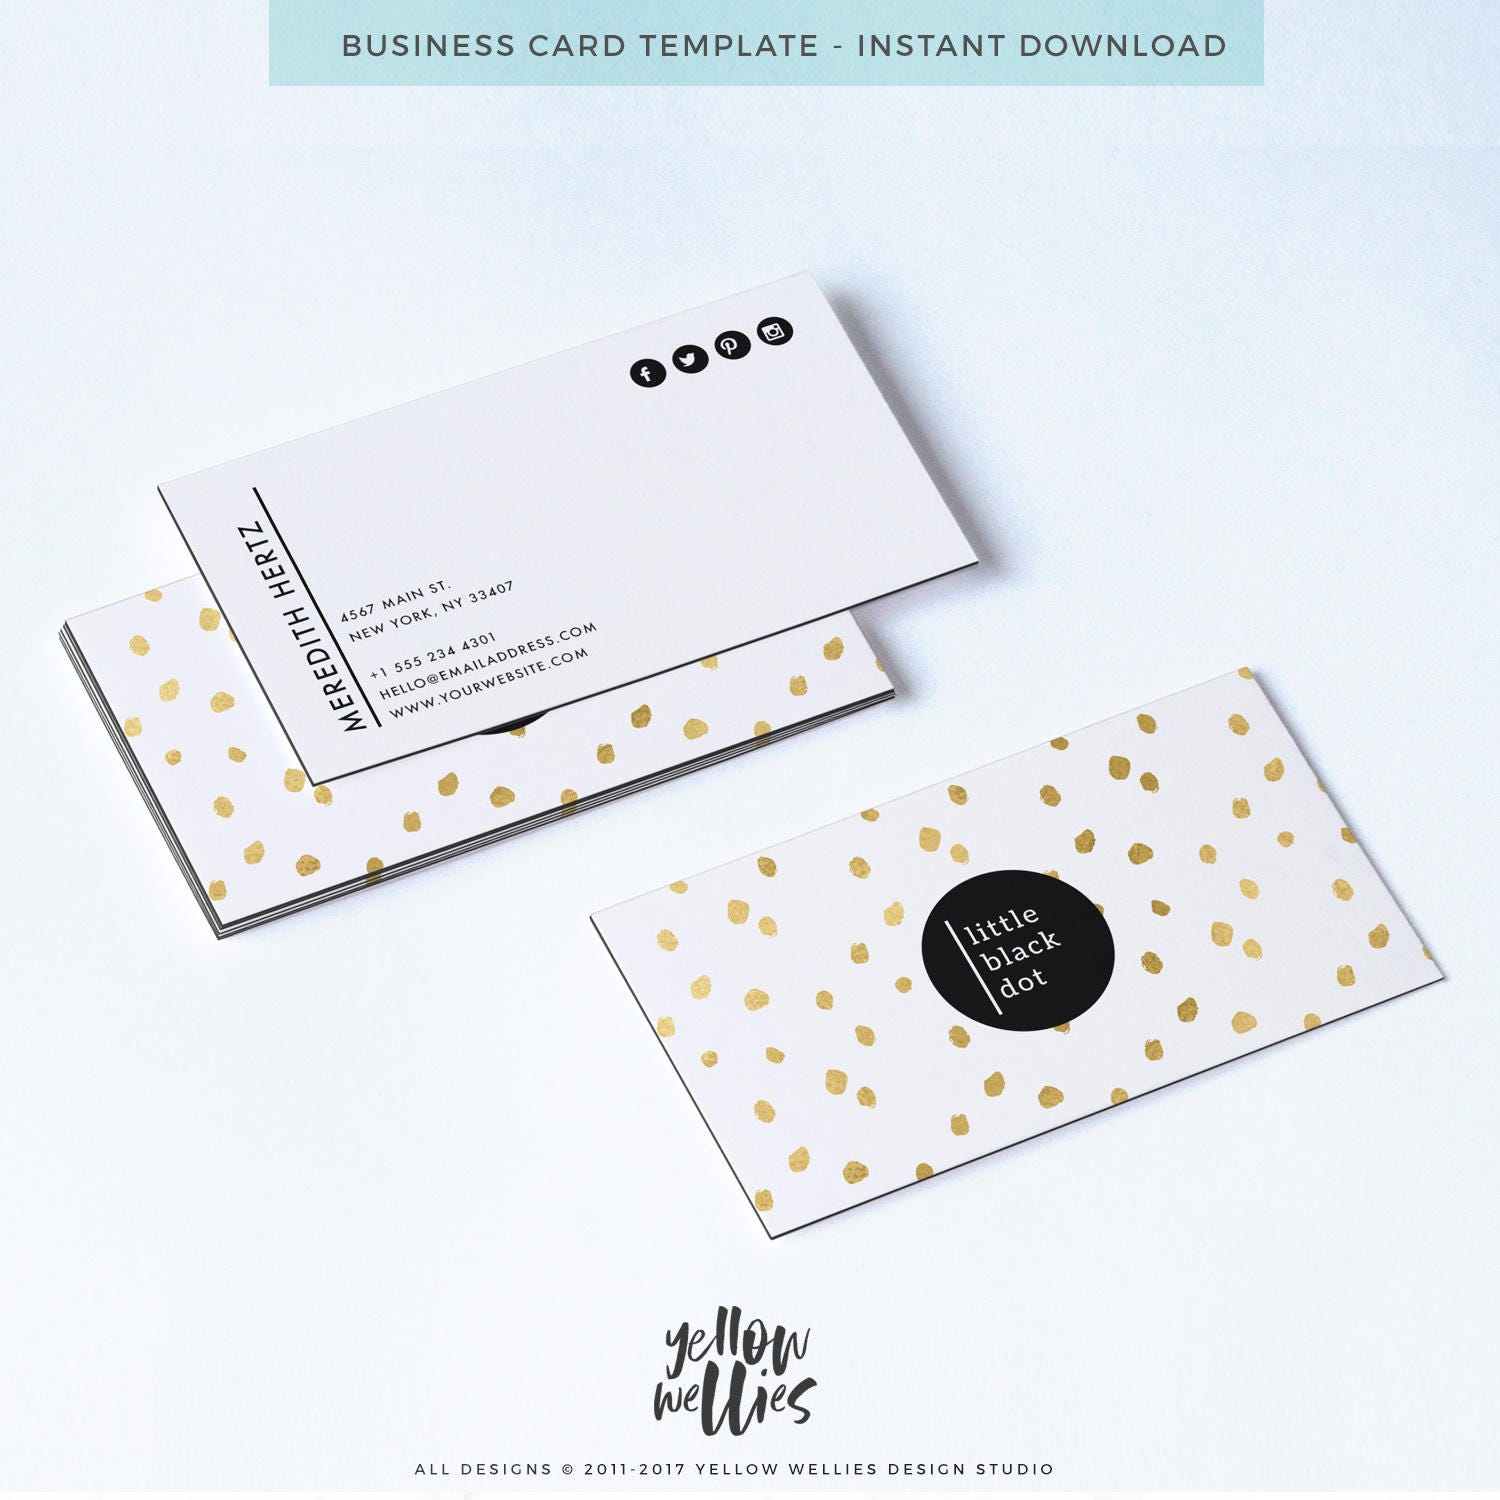 Awesome pictures of rush business cards nyc business cards and business card template gold dot business card photoshop magicingreecefo Image collections